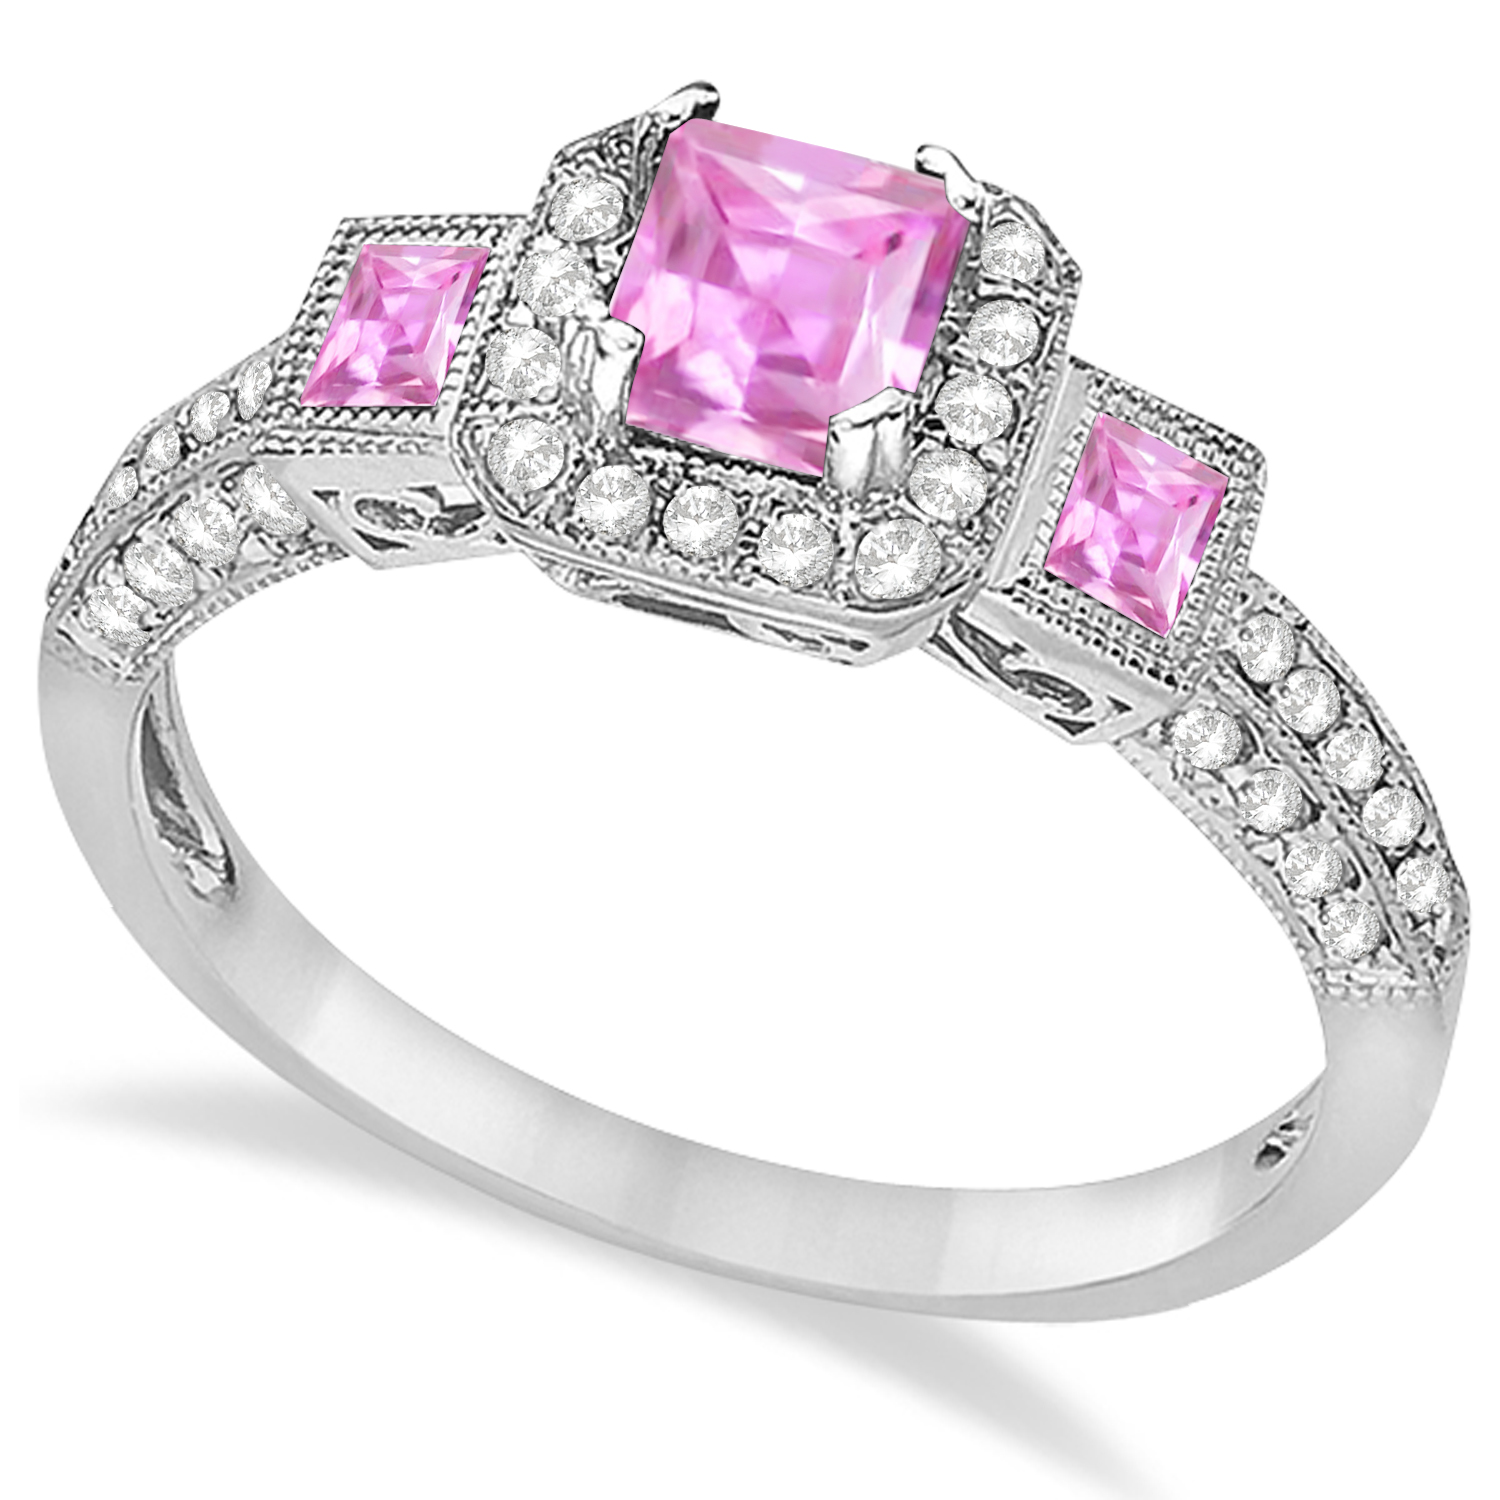 Pink Sapphire & Diamond Engagement Ring in 14k White Gold (1.35ctw)